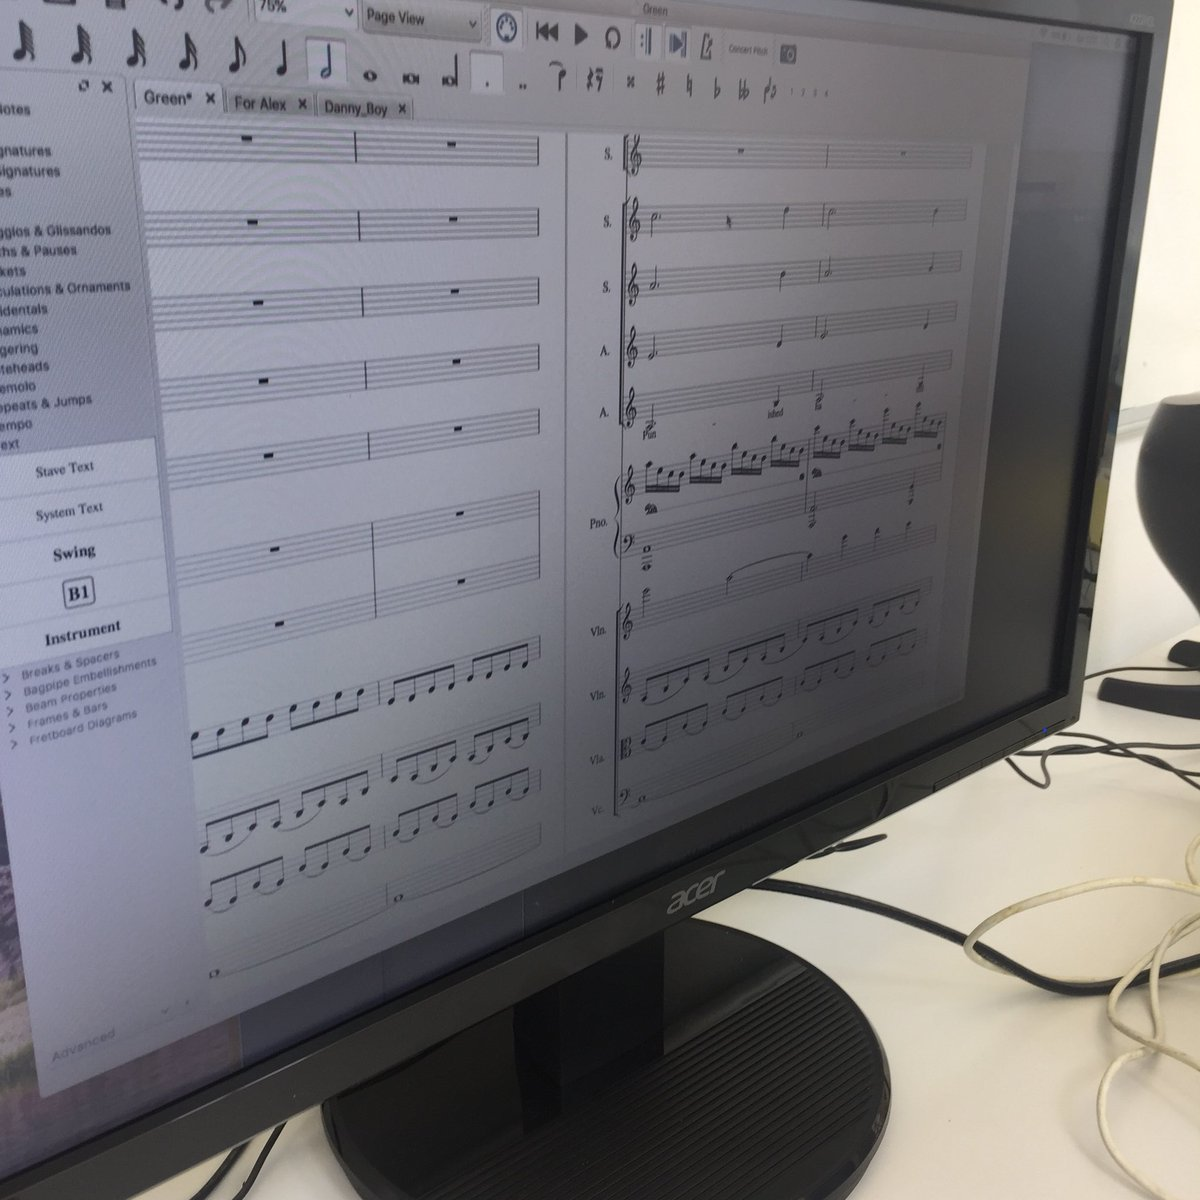 test Twitter Media - @CrescentArts with @Keith_Acheson. Very exciting stuff composing and writing the libretto for 18. Catch the full performance @CrumlinRoadGaol 15 Sept #suffrage #cityofmusic @belfastcc #choral 🙀we're working! #artsmatterni https://t.co/gtDb5BQimq